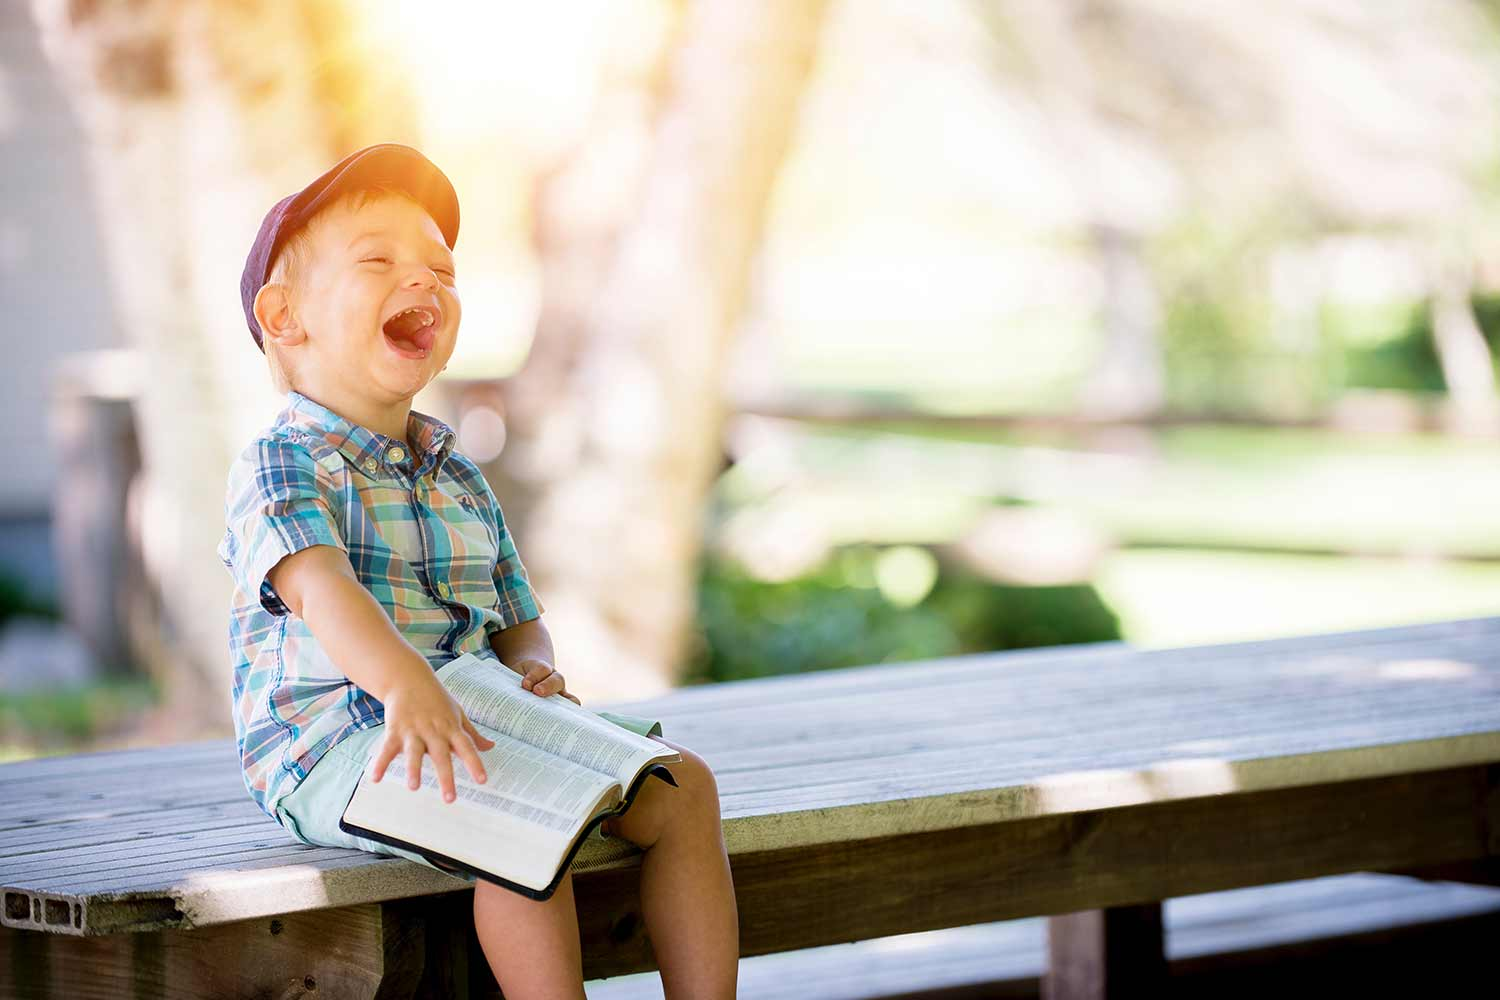 laughing-kid.jpg